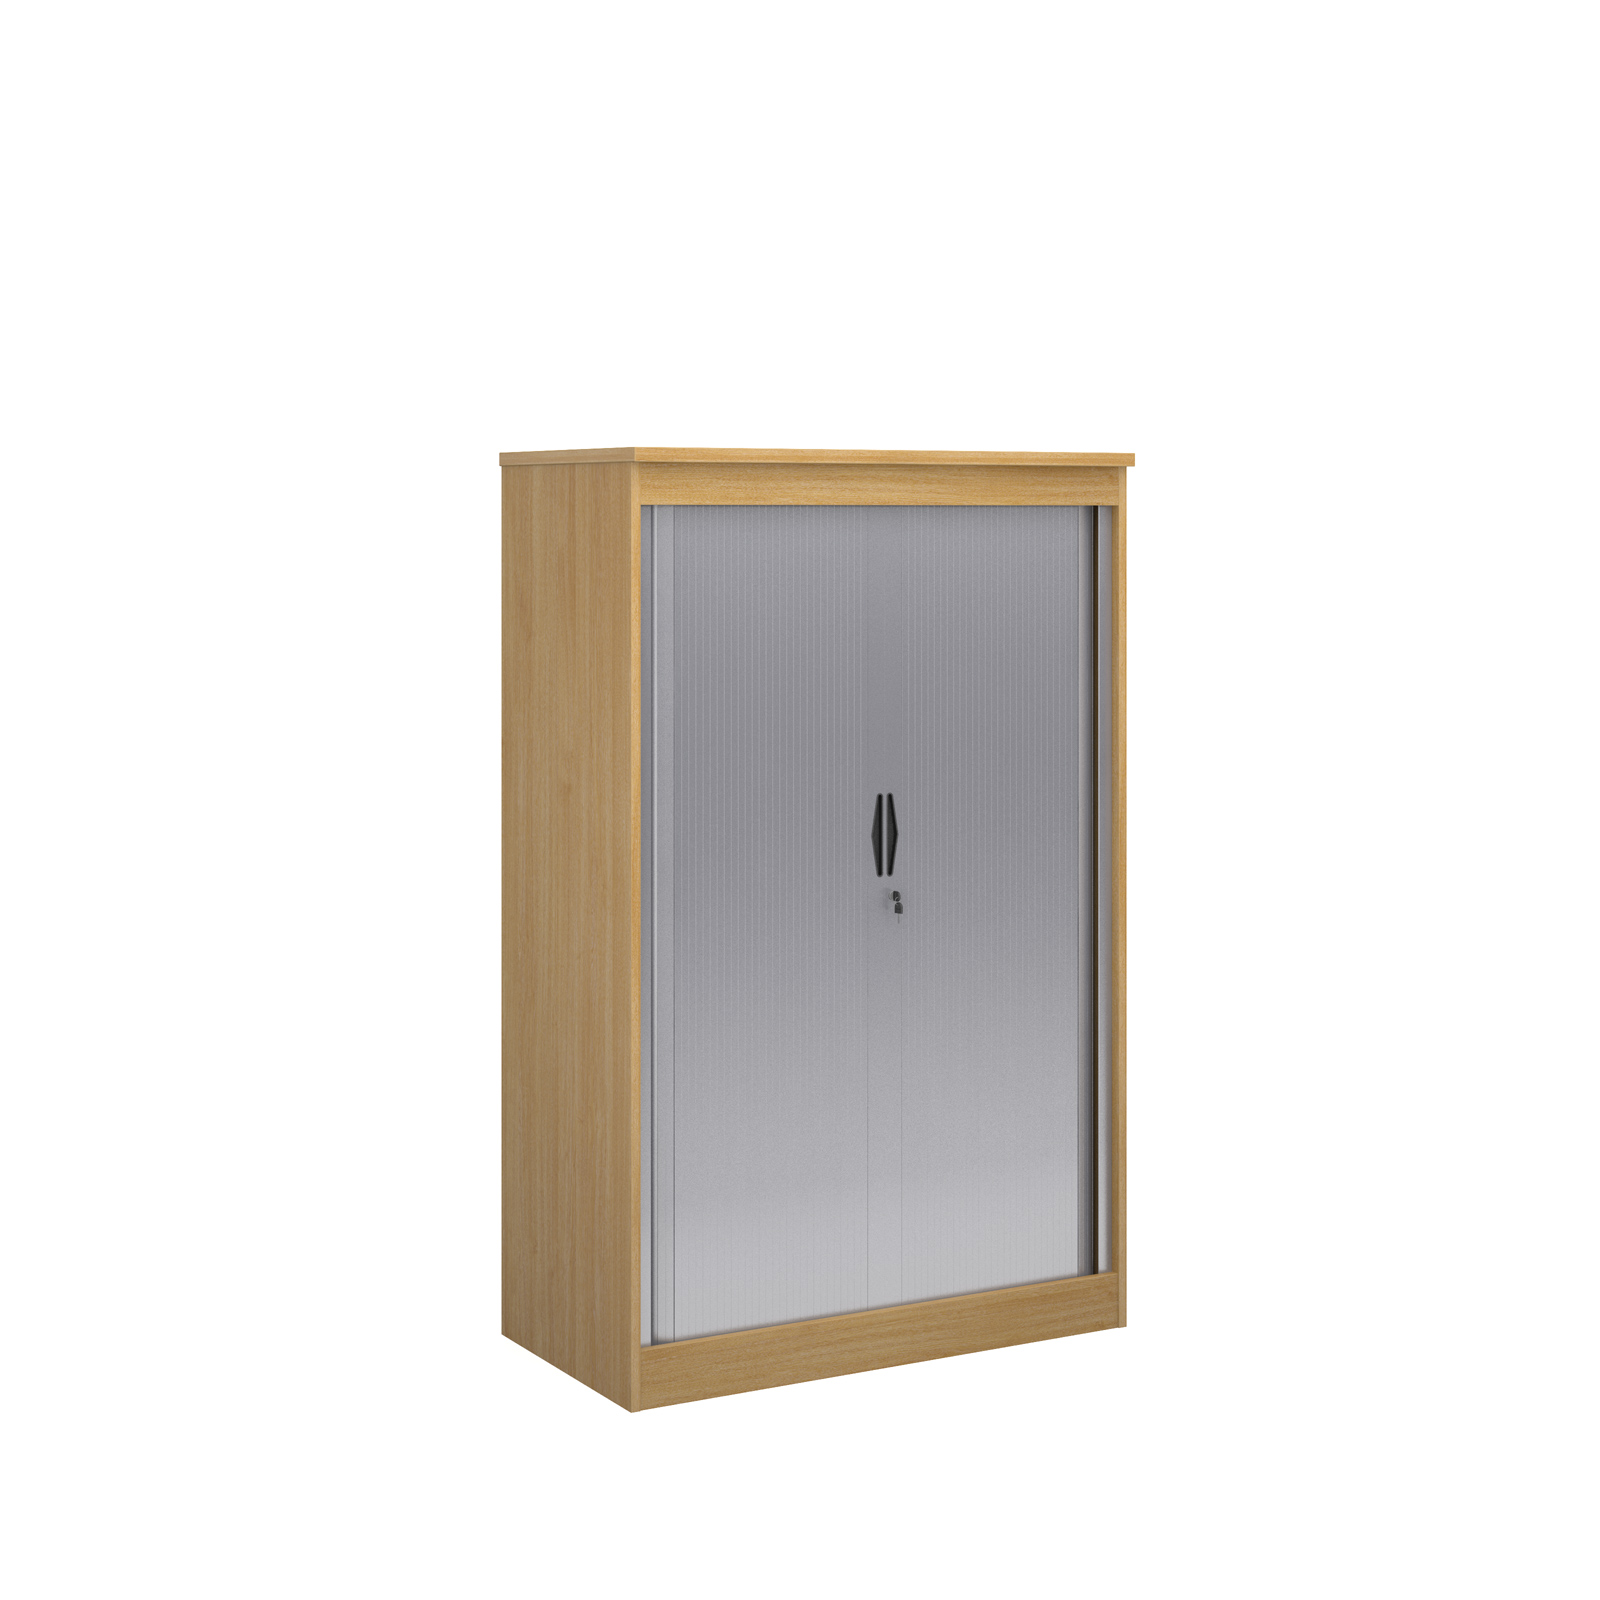 1600mm high system horizontal tambour door cupboard in oak